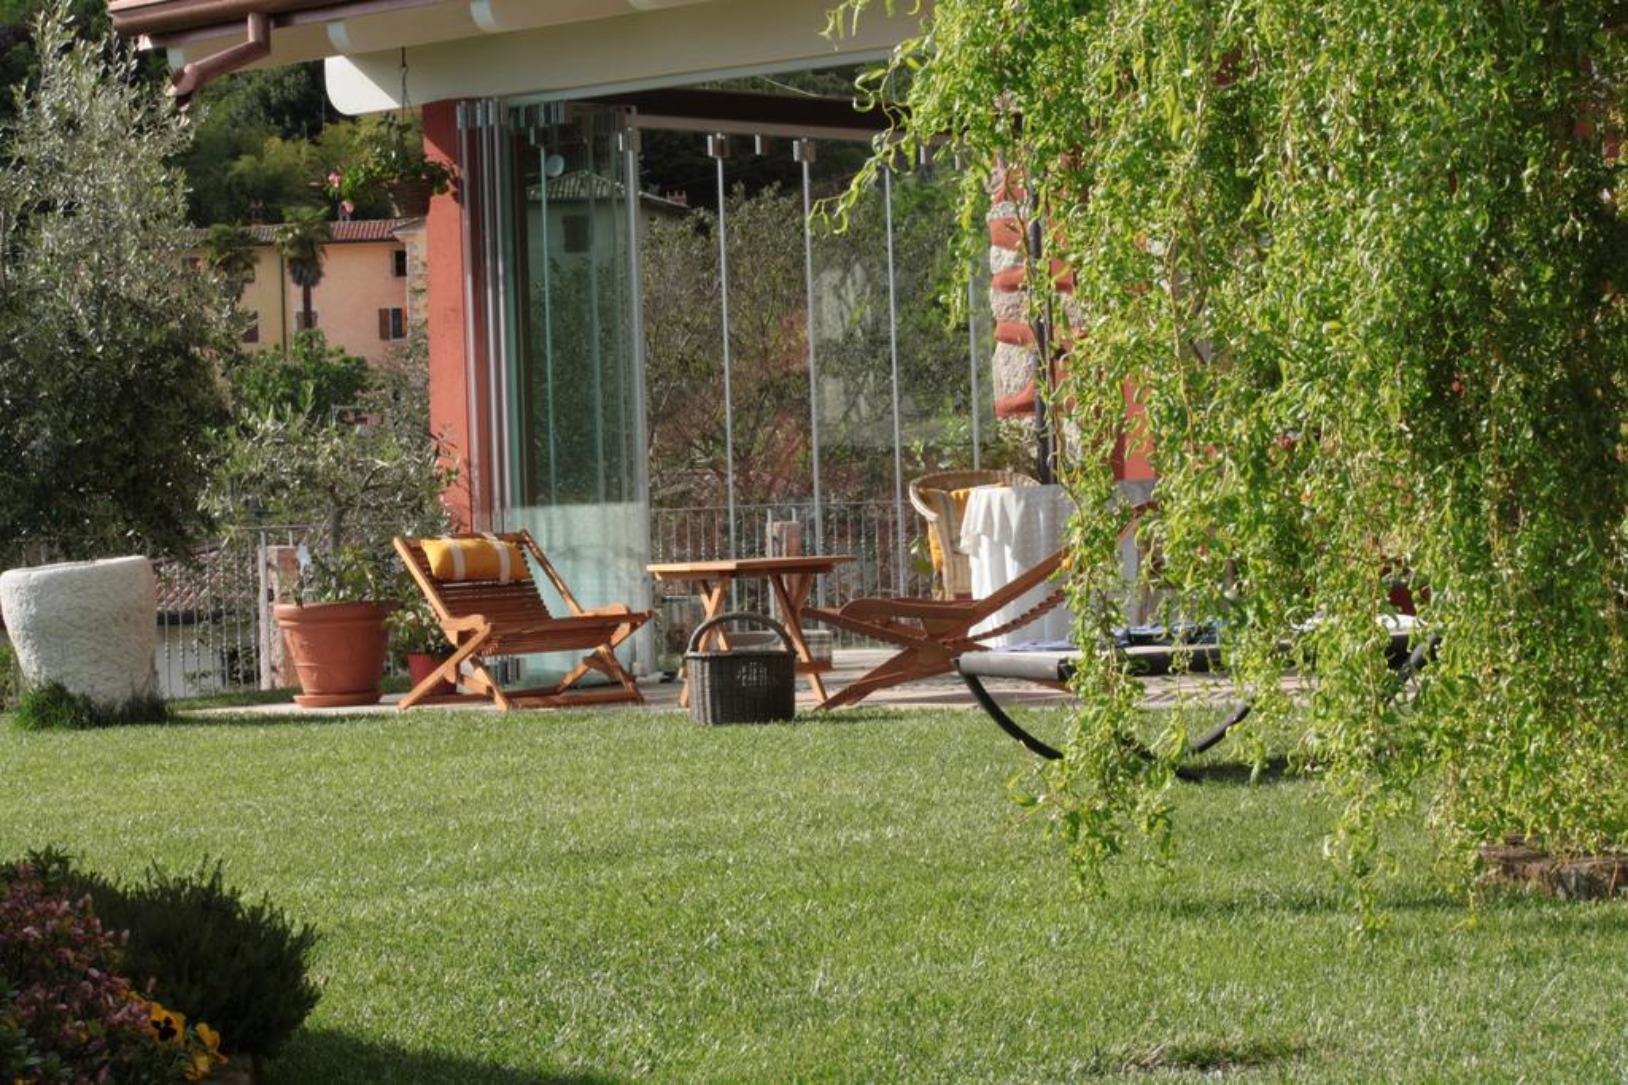 A group of lawn chairs sitting on top of a grass covered field at Poggio Caiar Bed & Breakfast.